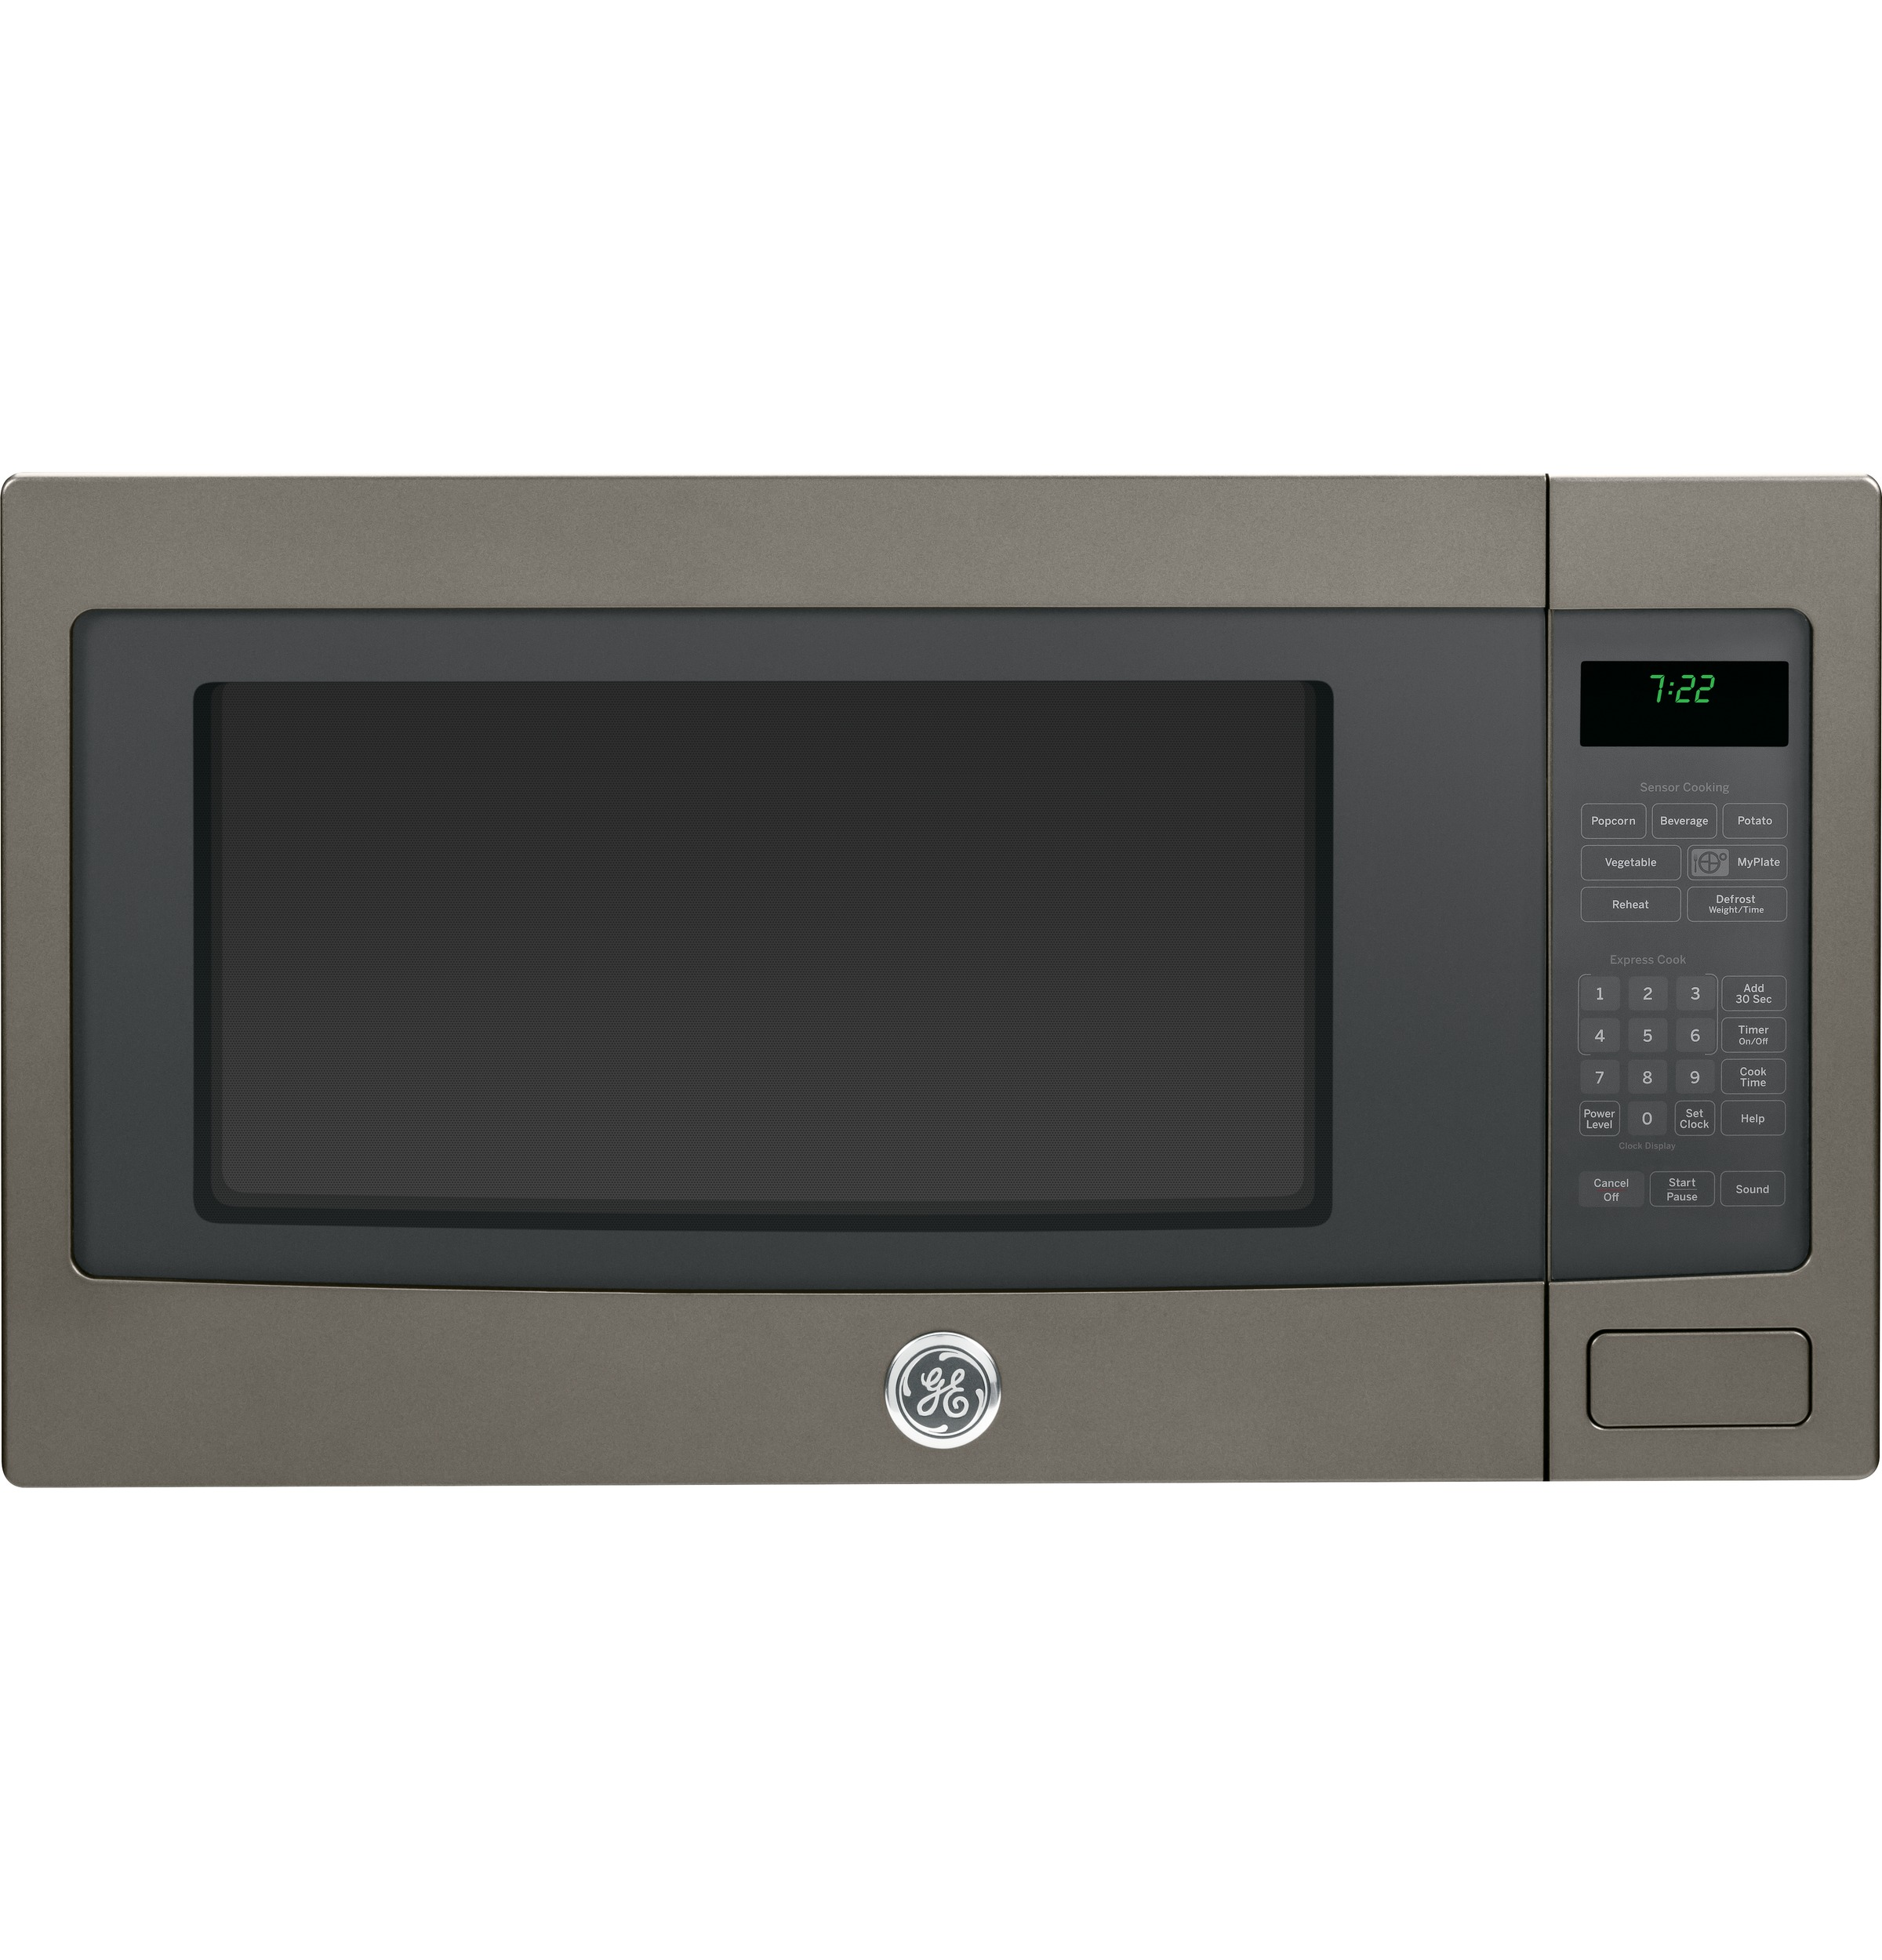 Countertop Dishwasher Ge : ... Cu. Ft. Countertop Microwave Oven PEB7226EHES GE Appliances